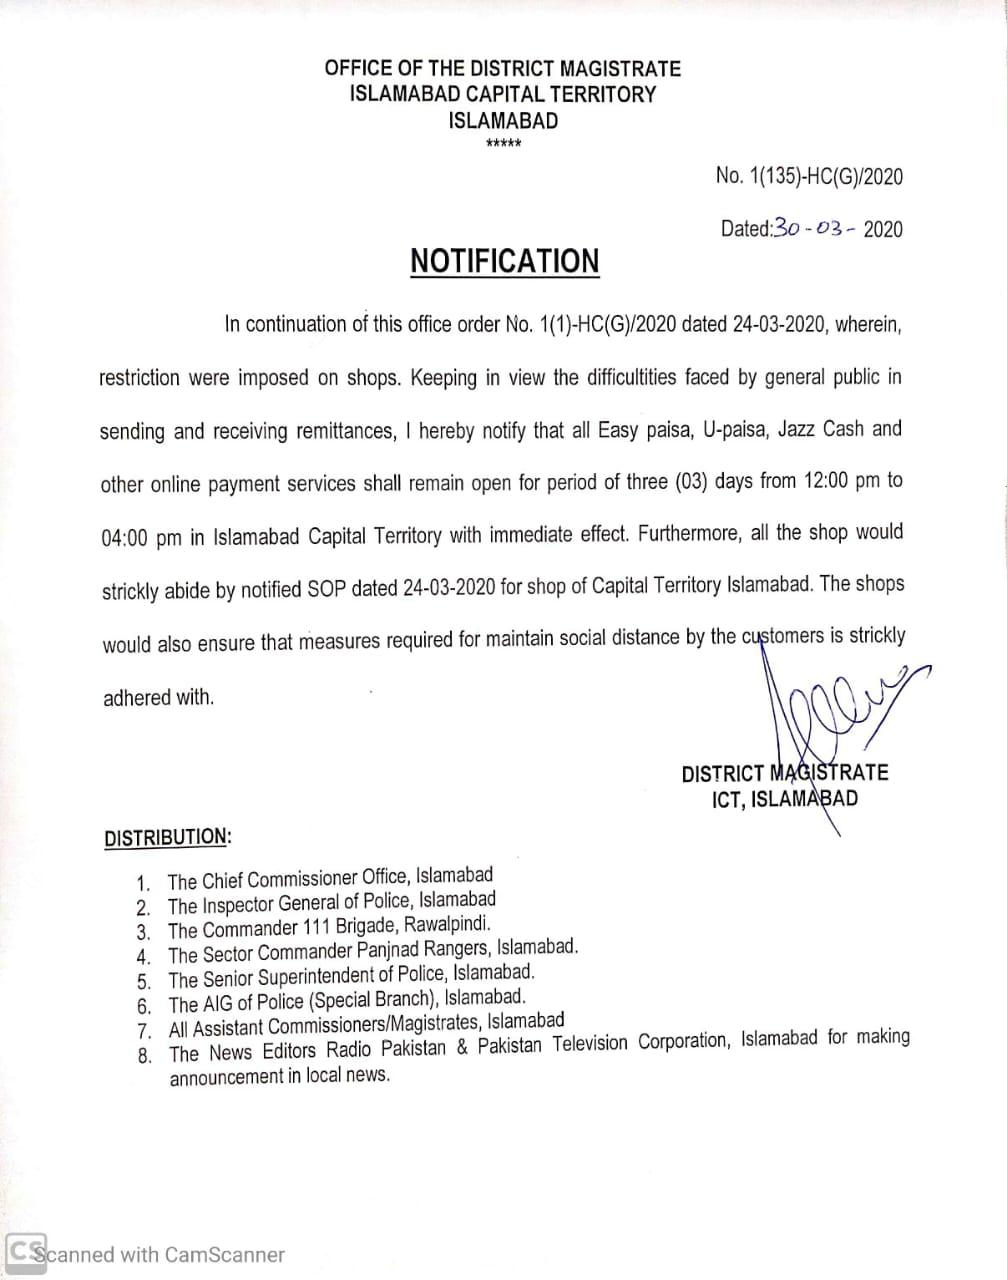 A copy of the notification issued.